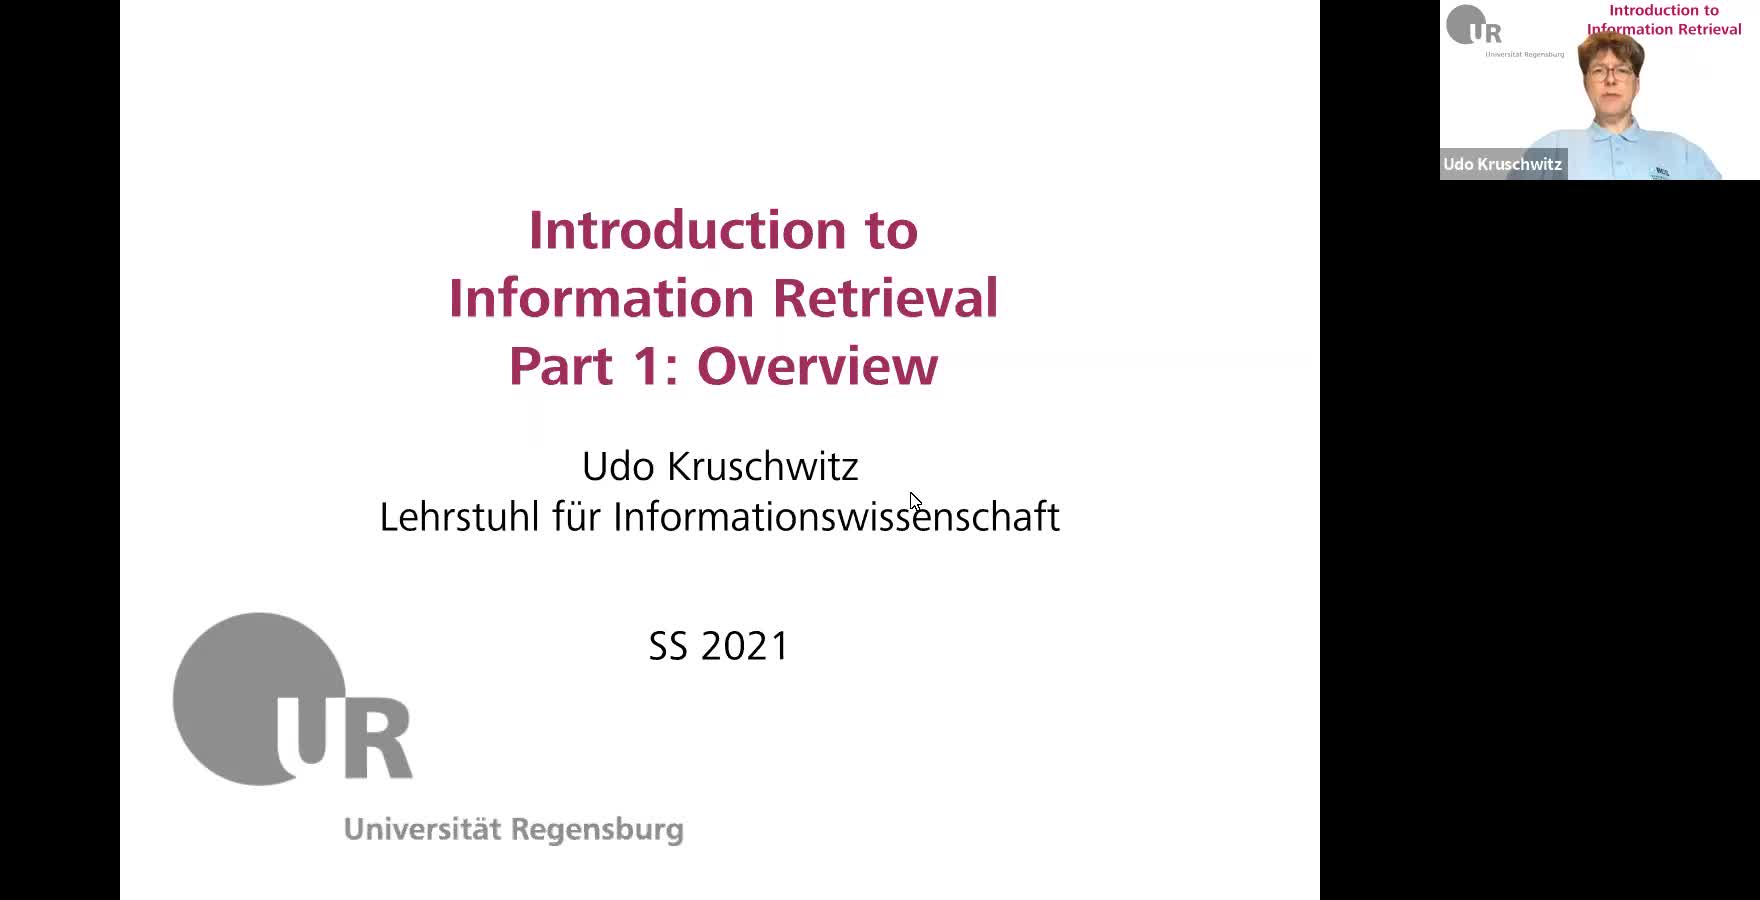 Introduction to Information Retrieval - Lecture 1 (Overview)